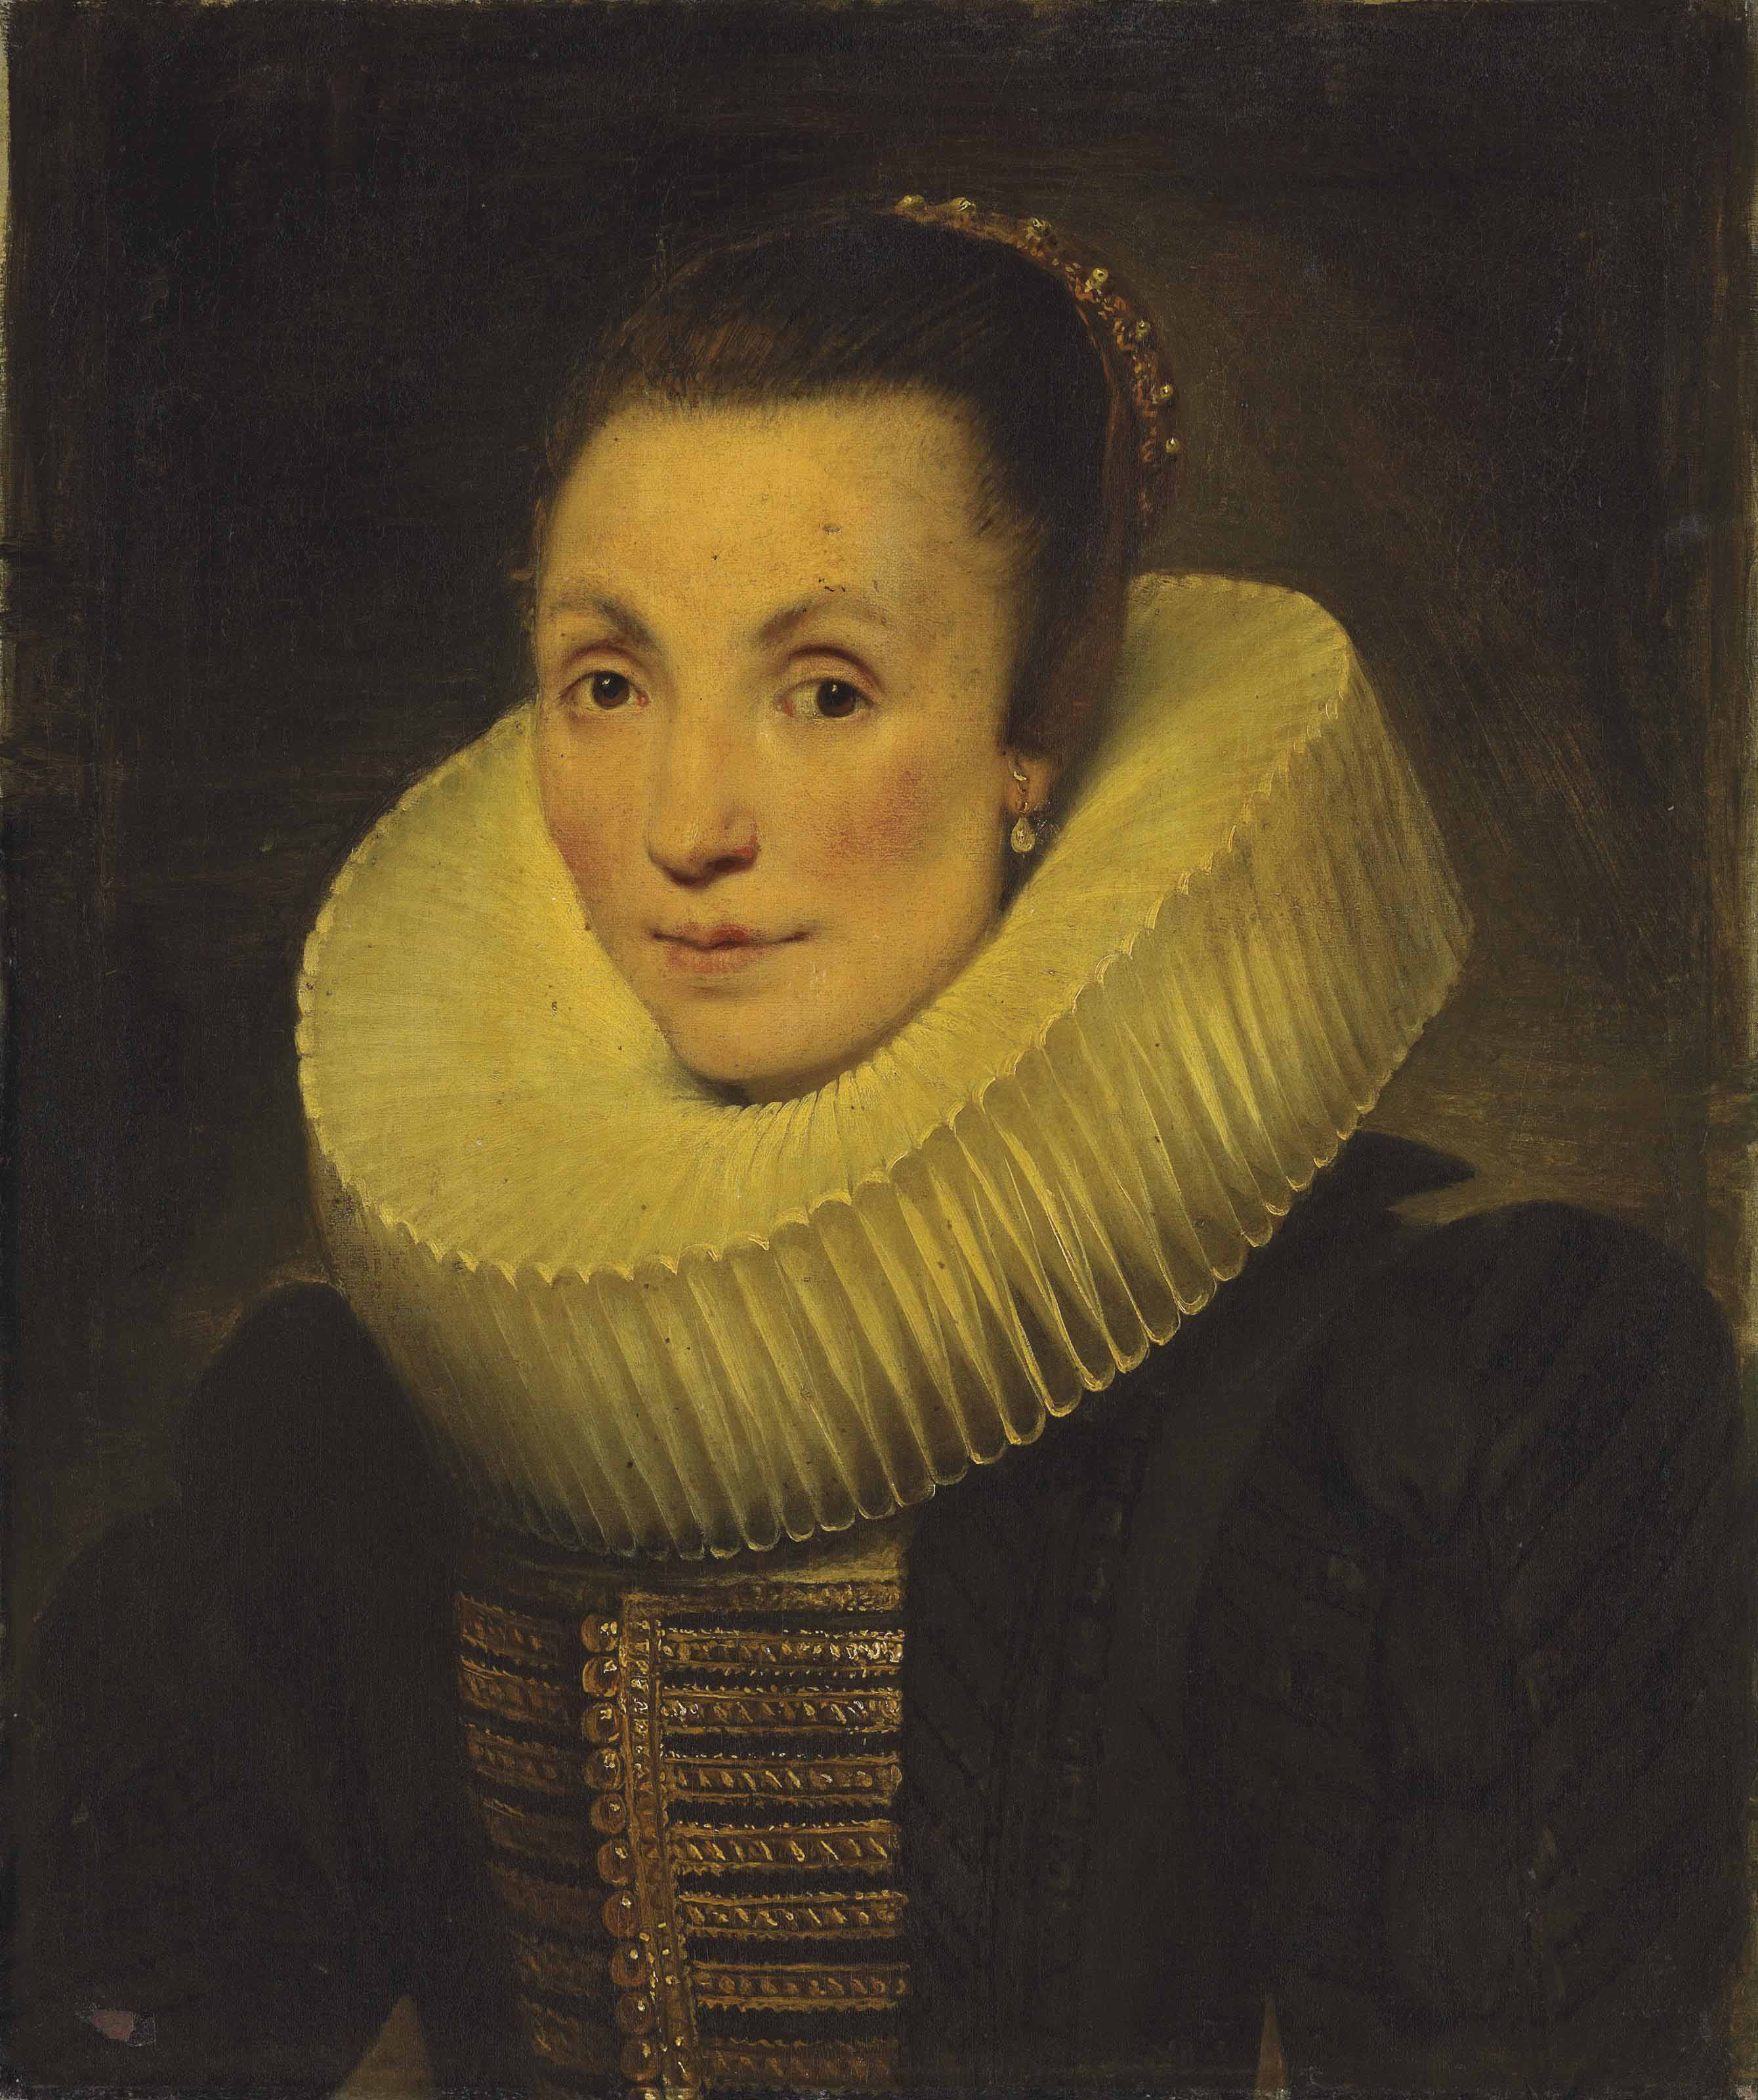 Portrait of a lady, half-length, in a black dress with gold embroidery and a ruff